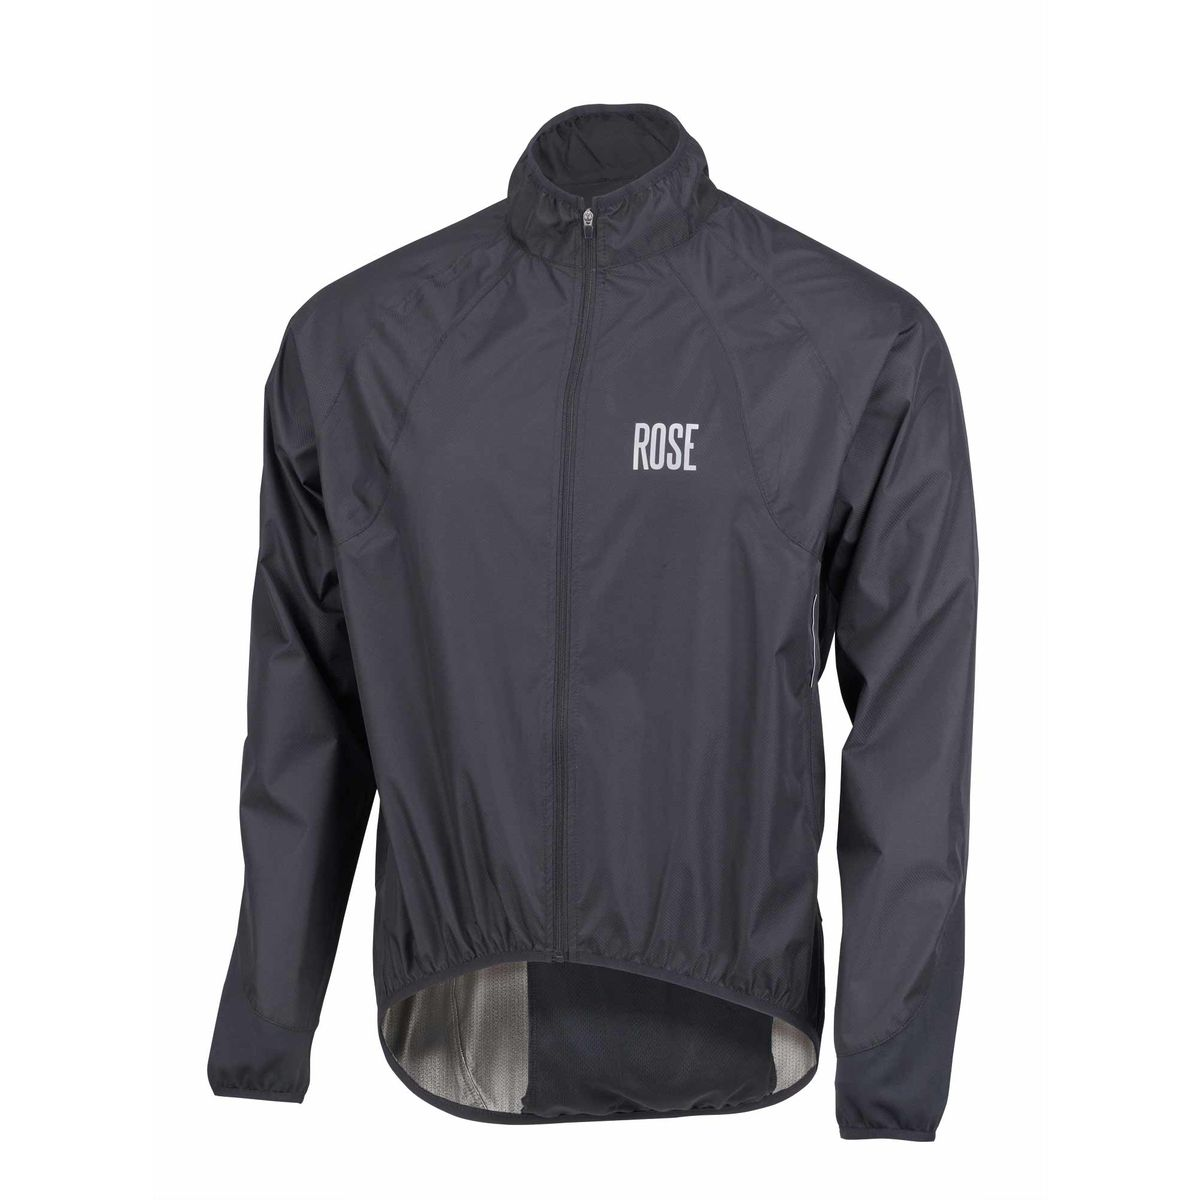 RR 02 waterproof jacket